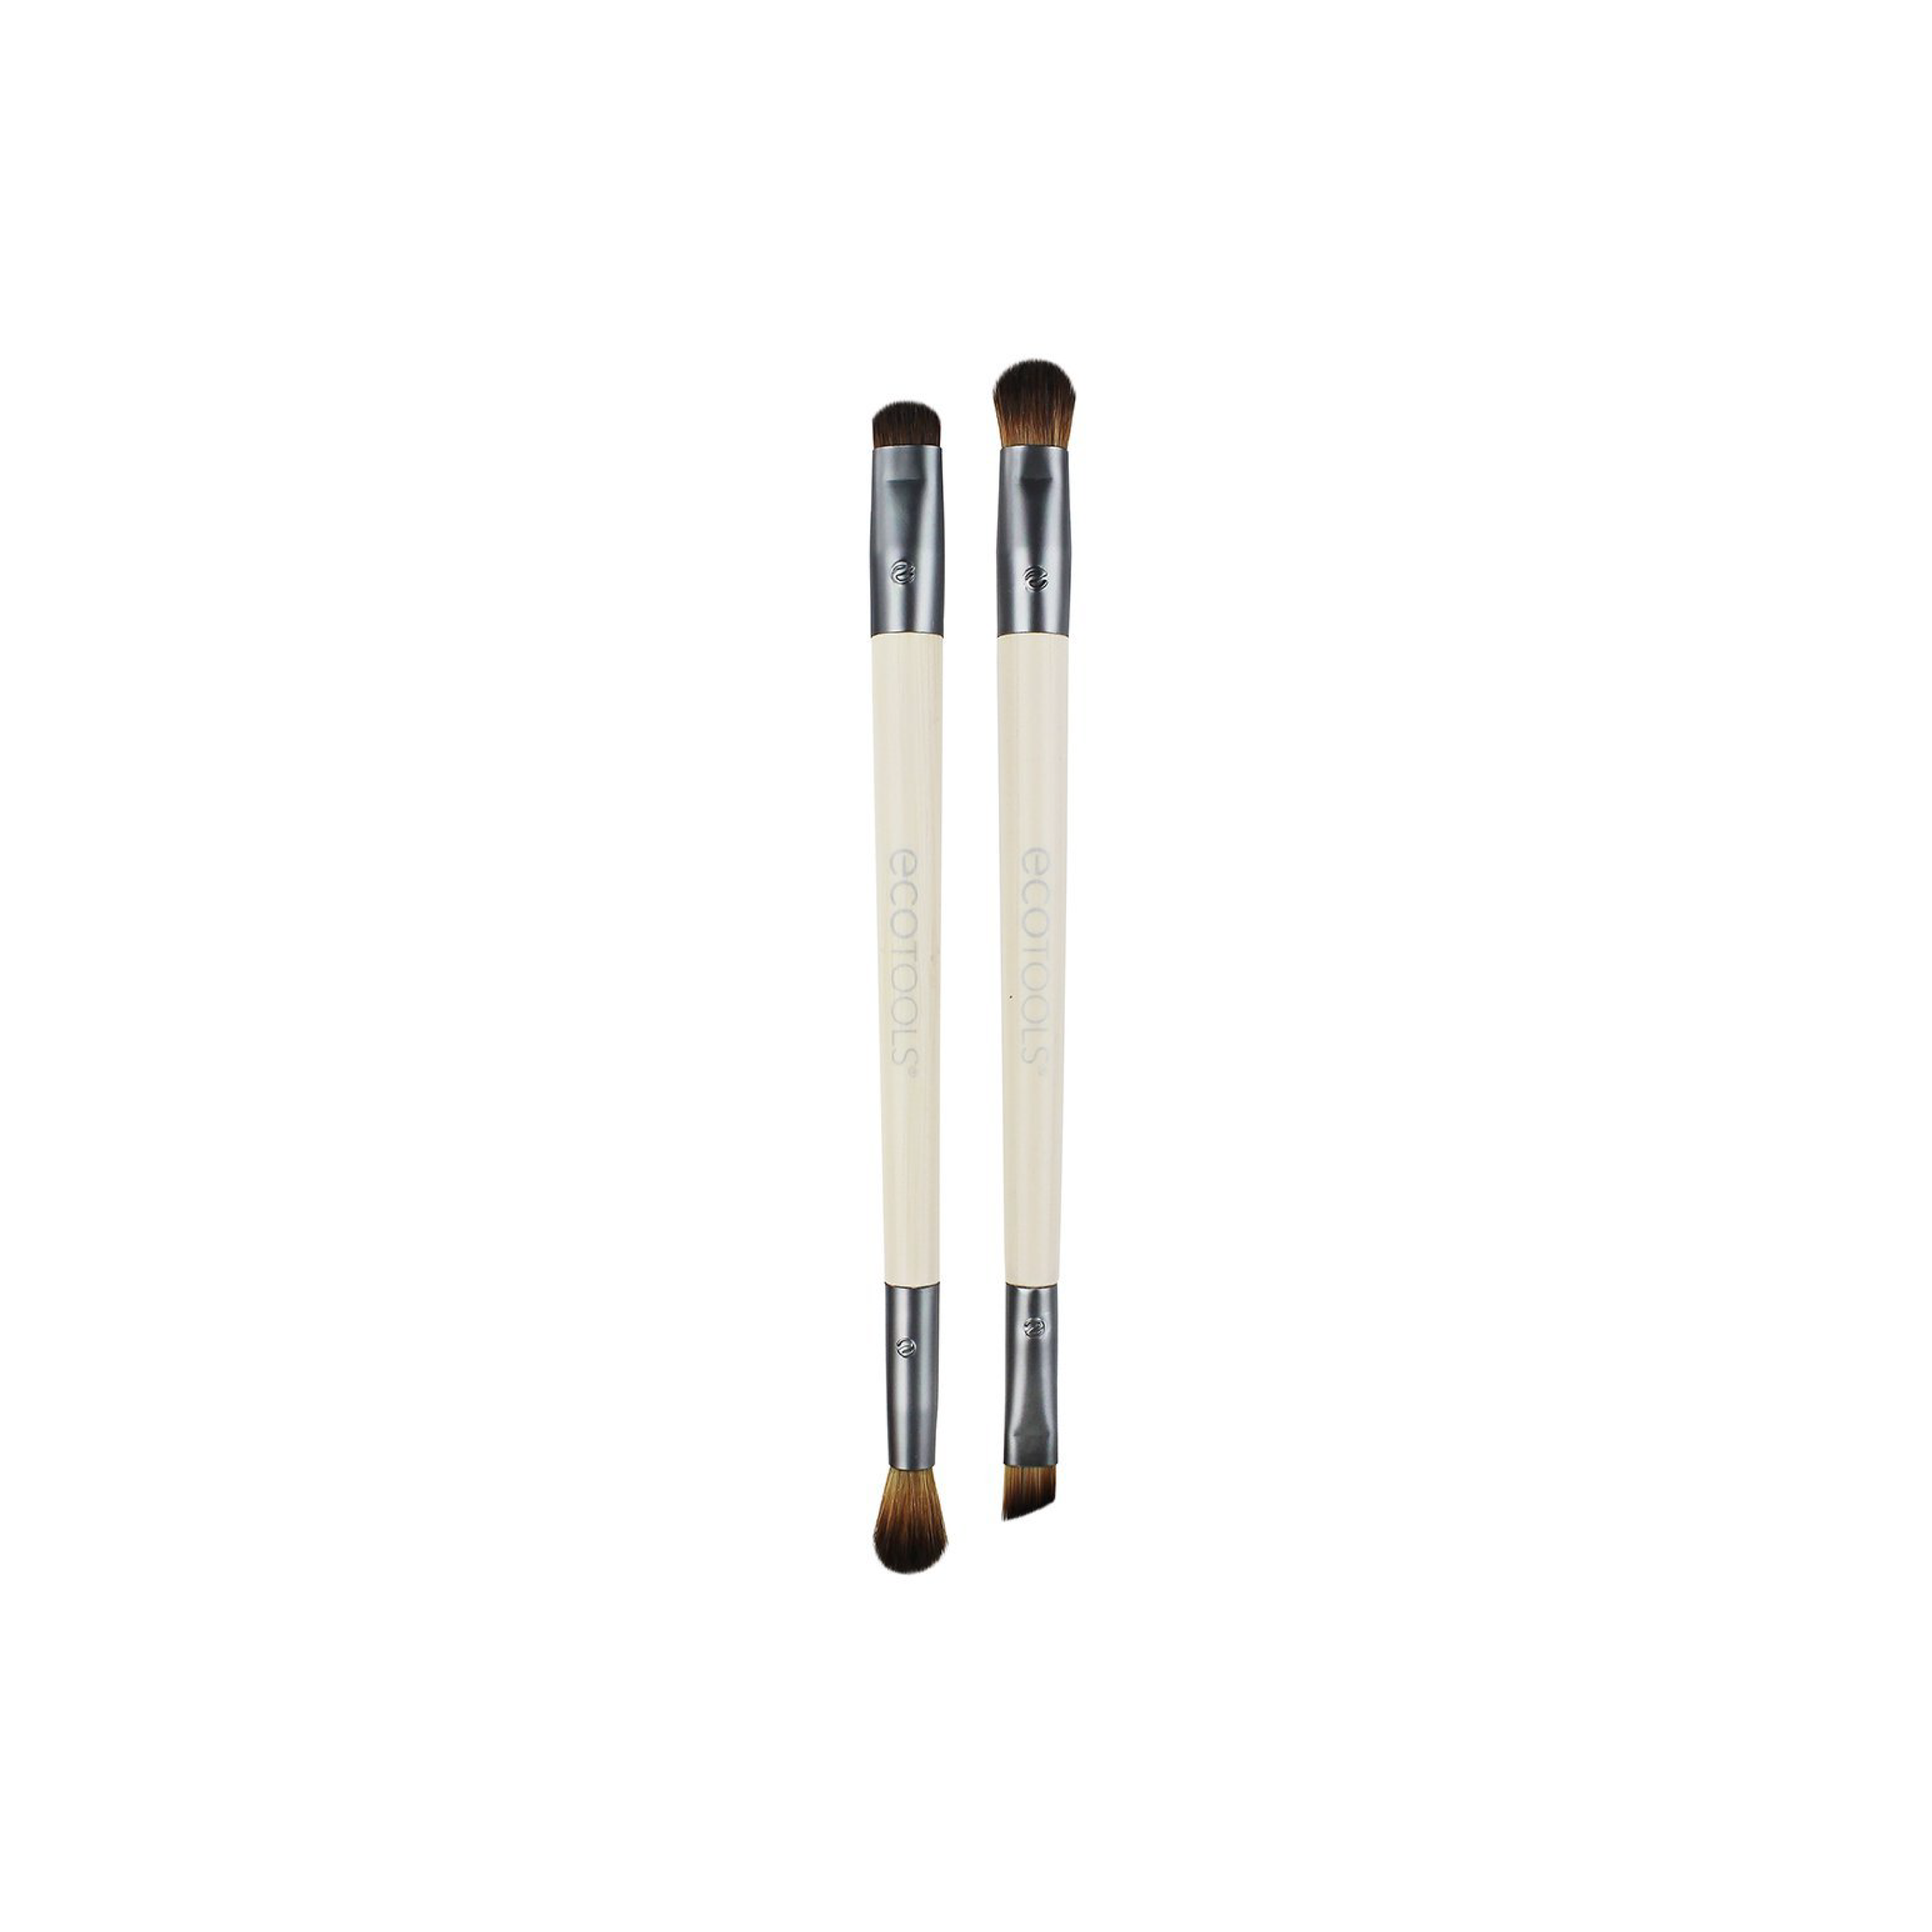 I use the angled brush in this set to apply my DIY activated charcoal eyeliner and fill in my eyebrows. So far, it's the best option I've found, and now that I own it - there's no need to buy another.